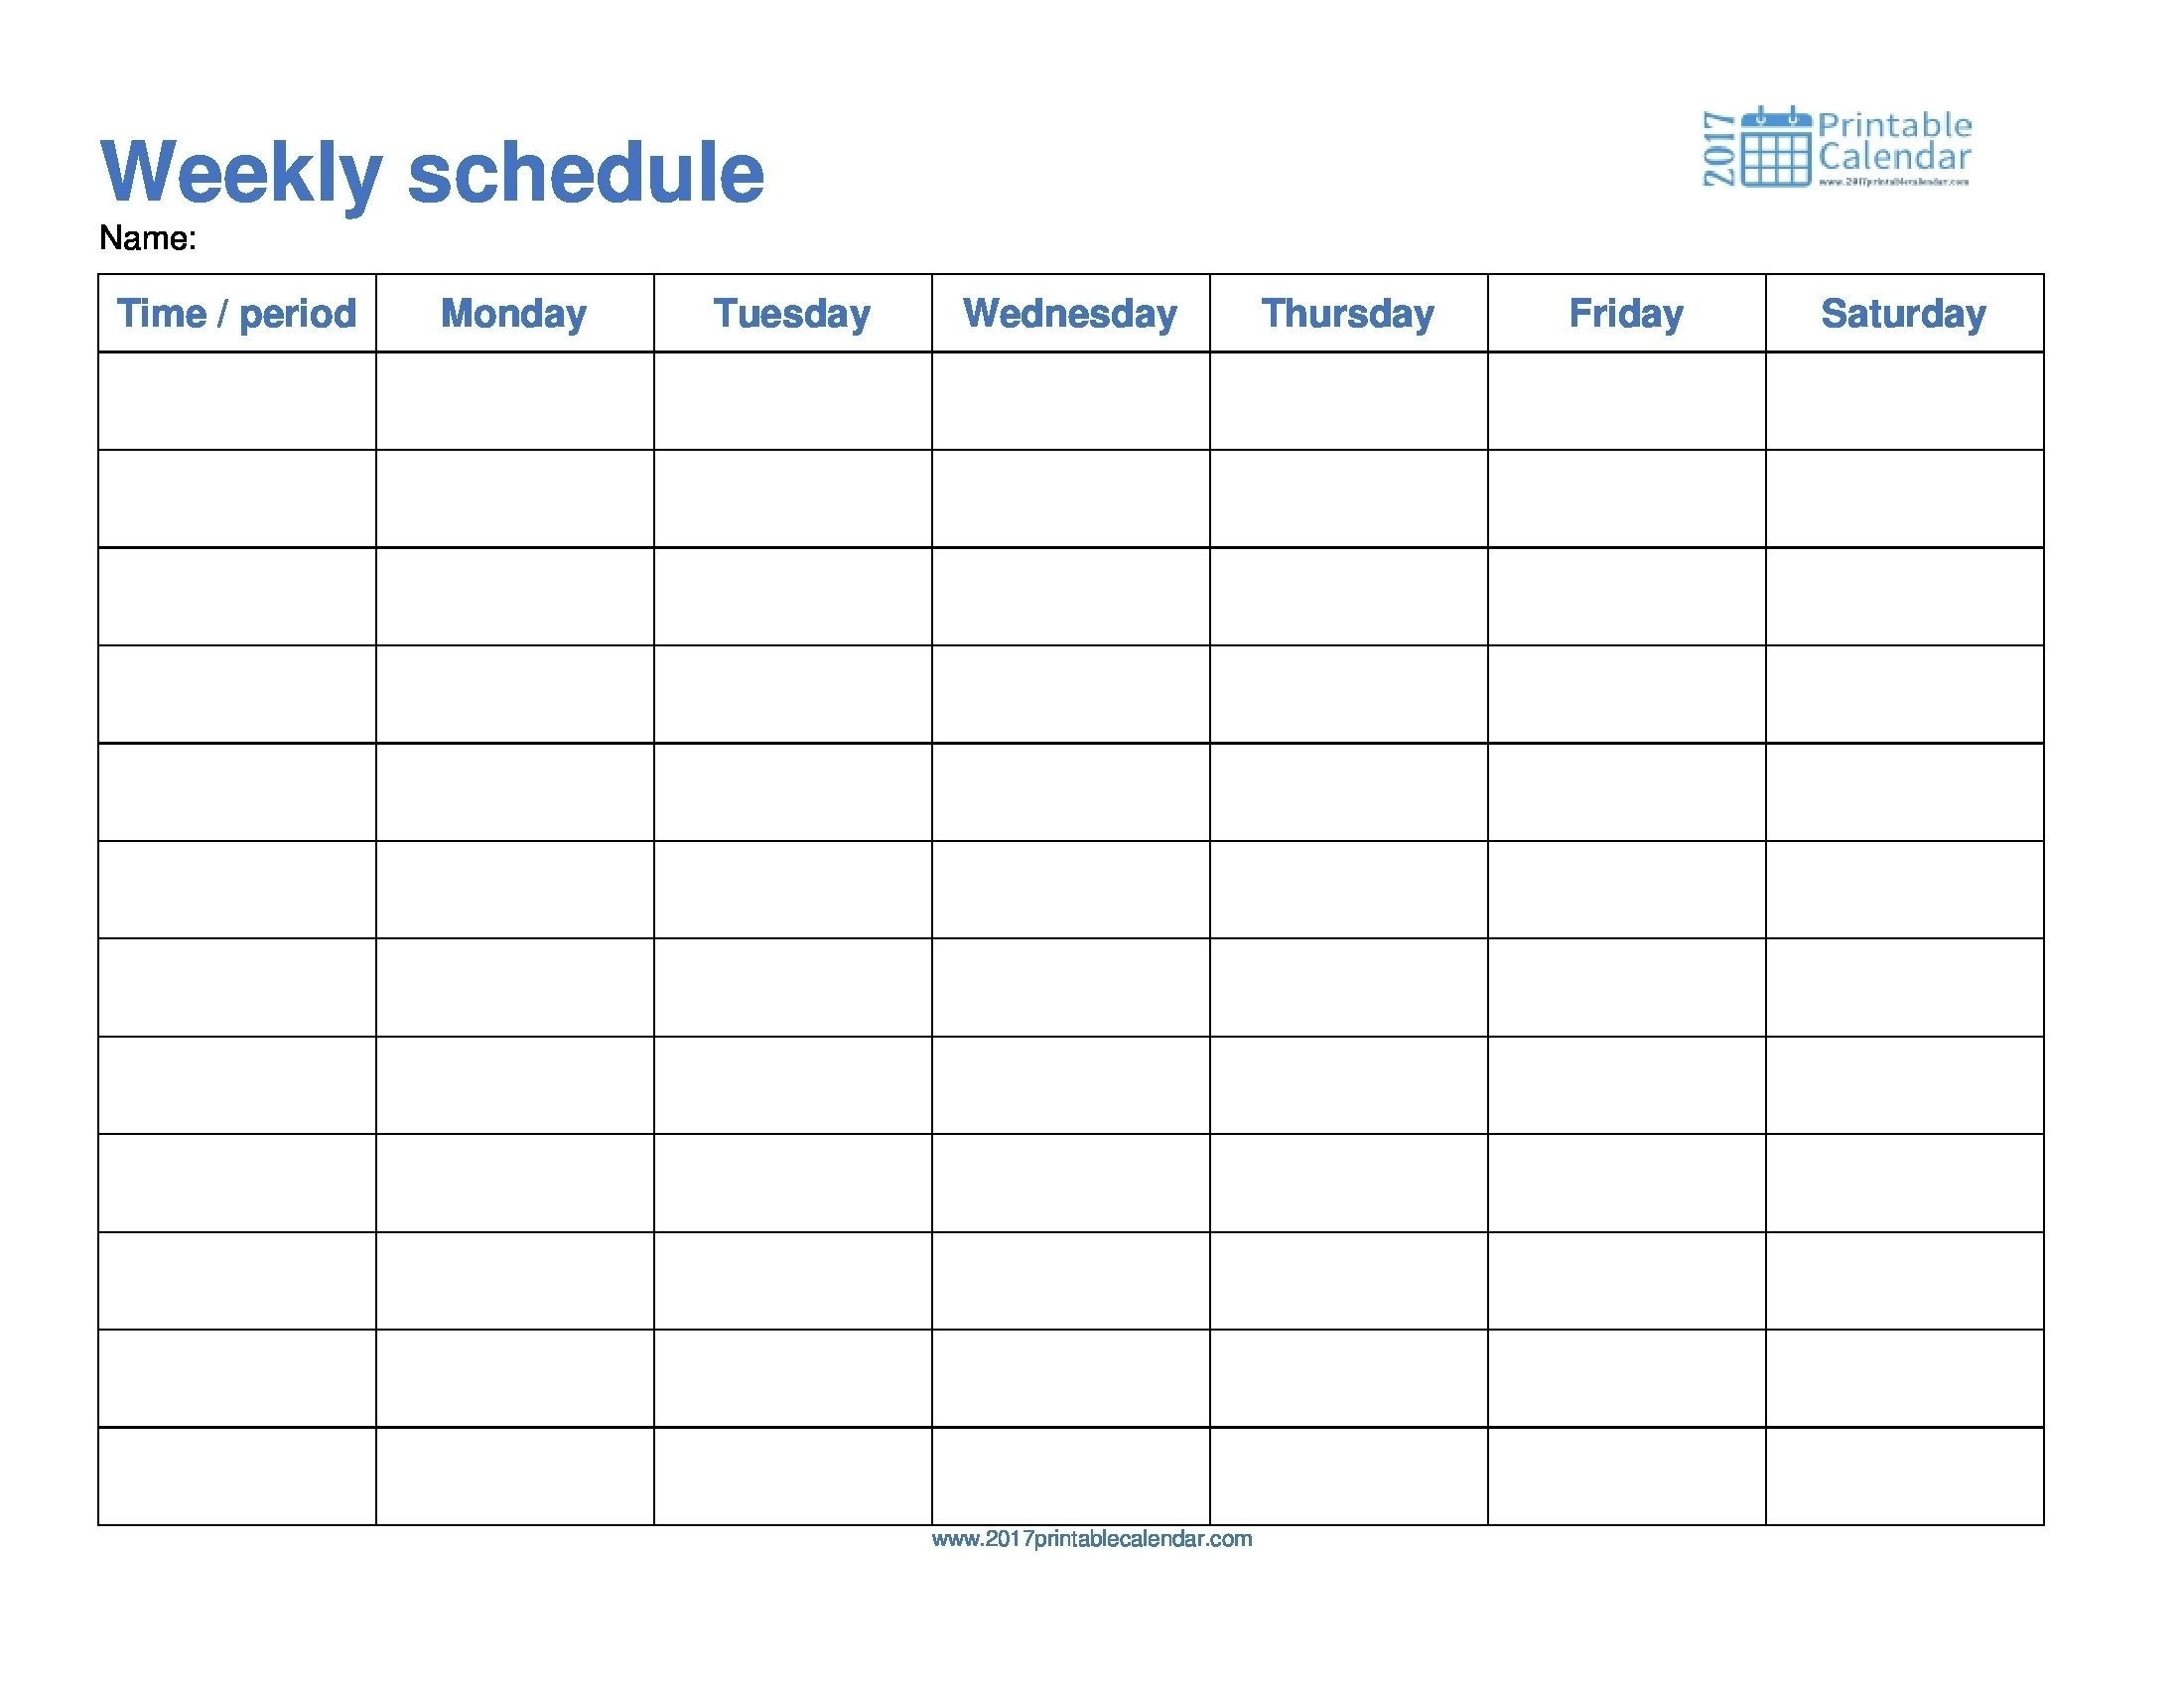 Monday To Friday Schedule Template Calendar Printable Through Sunday Make It Check More At Https